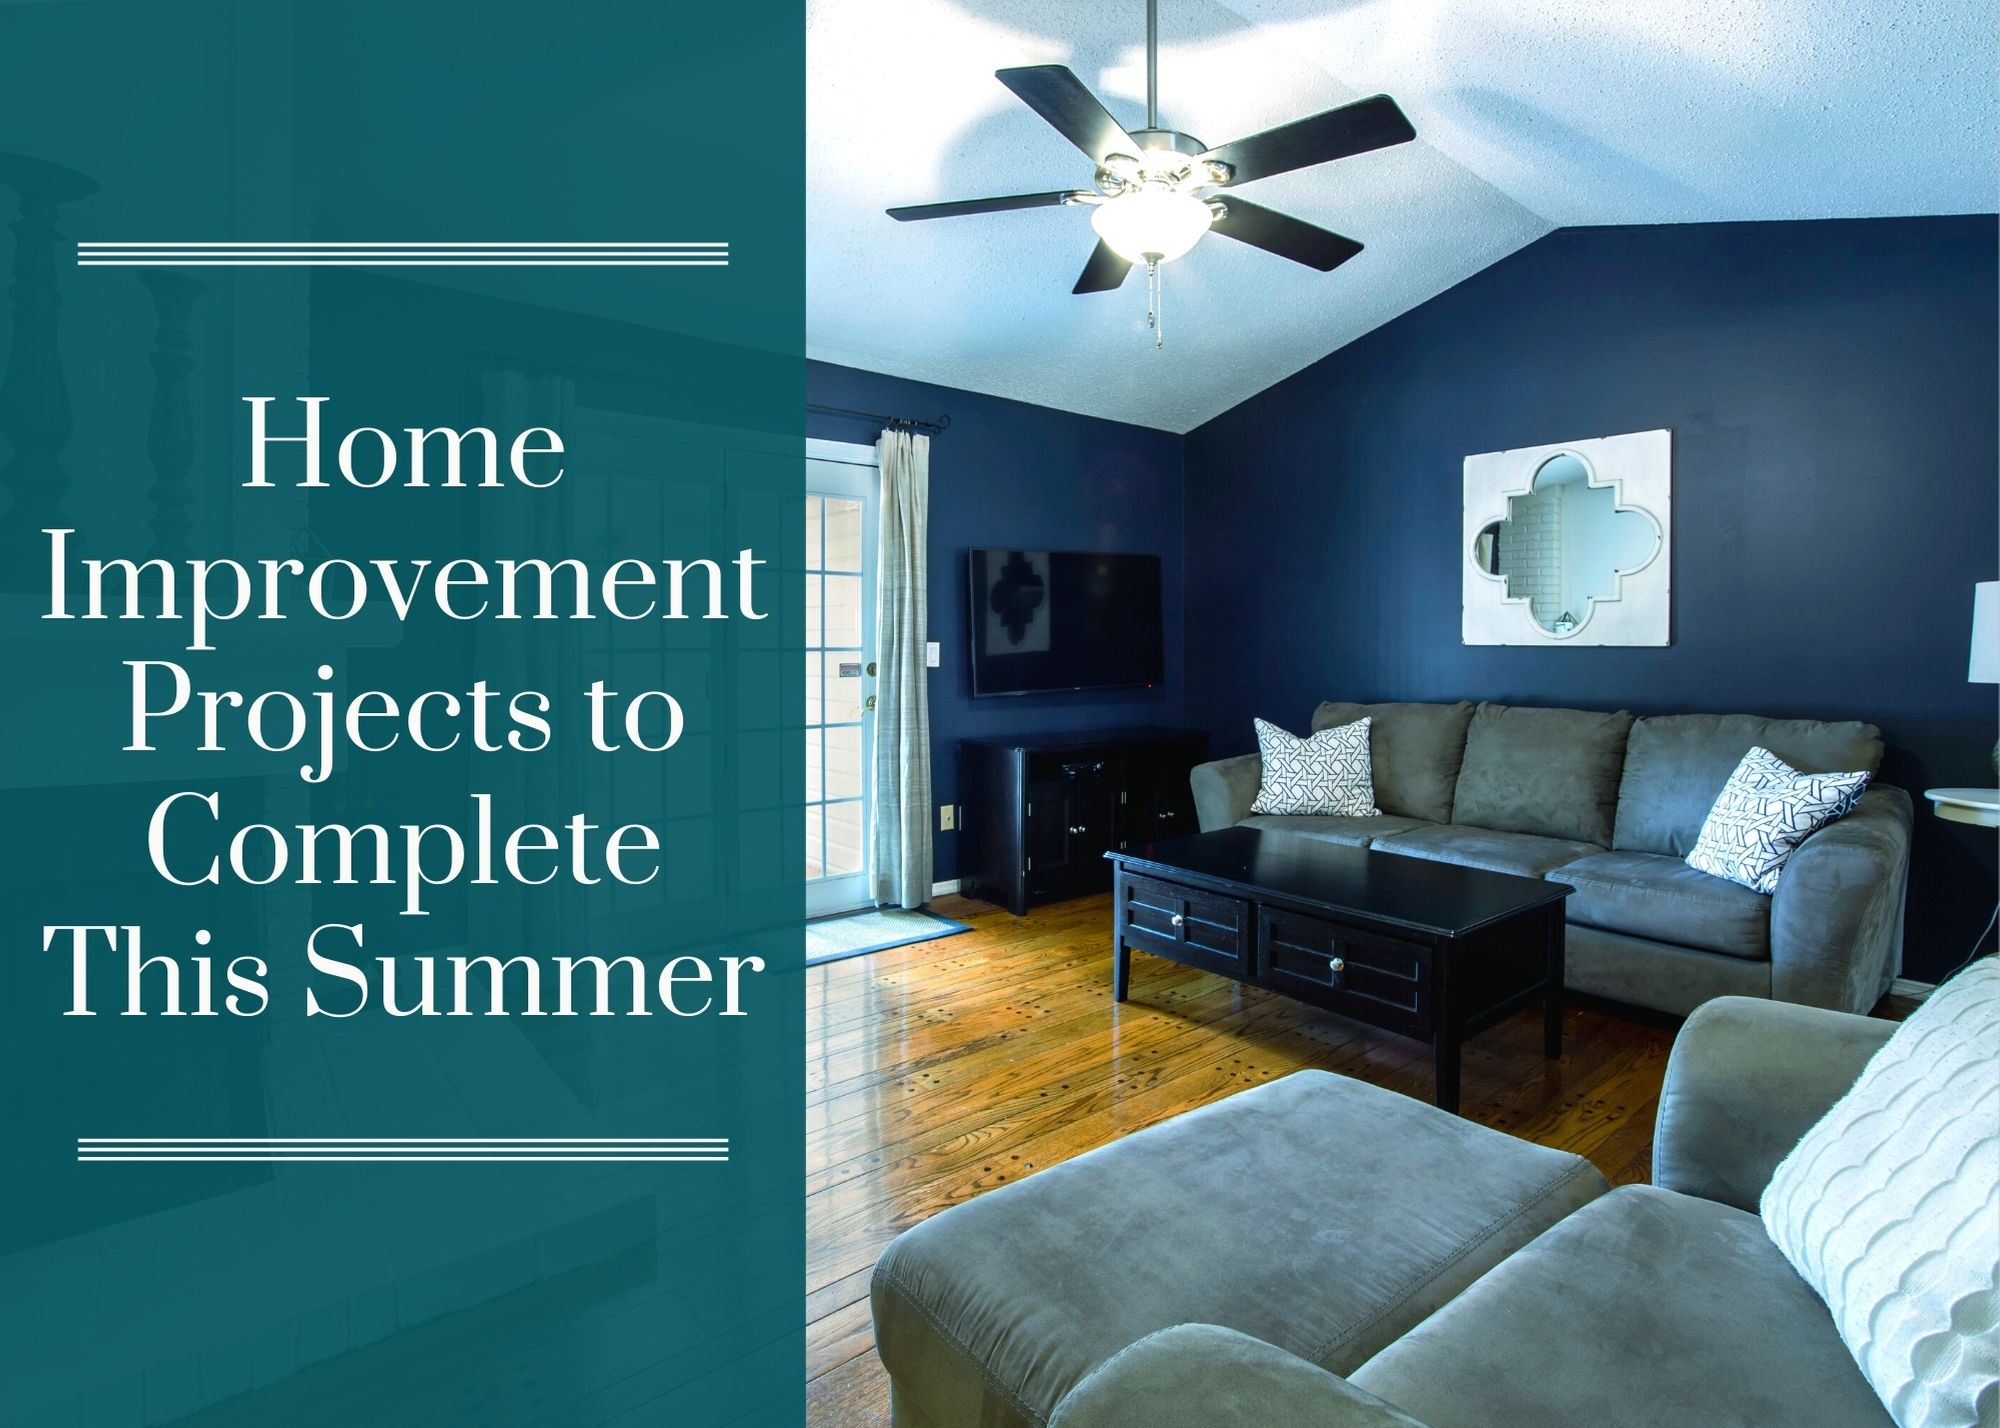 Home Improvement Projects to Complete This Summer